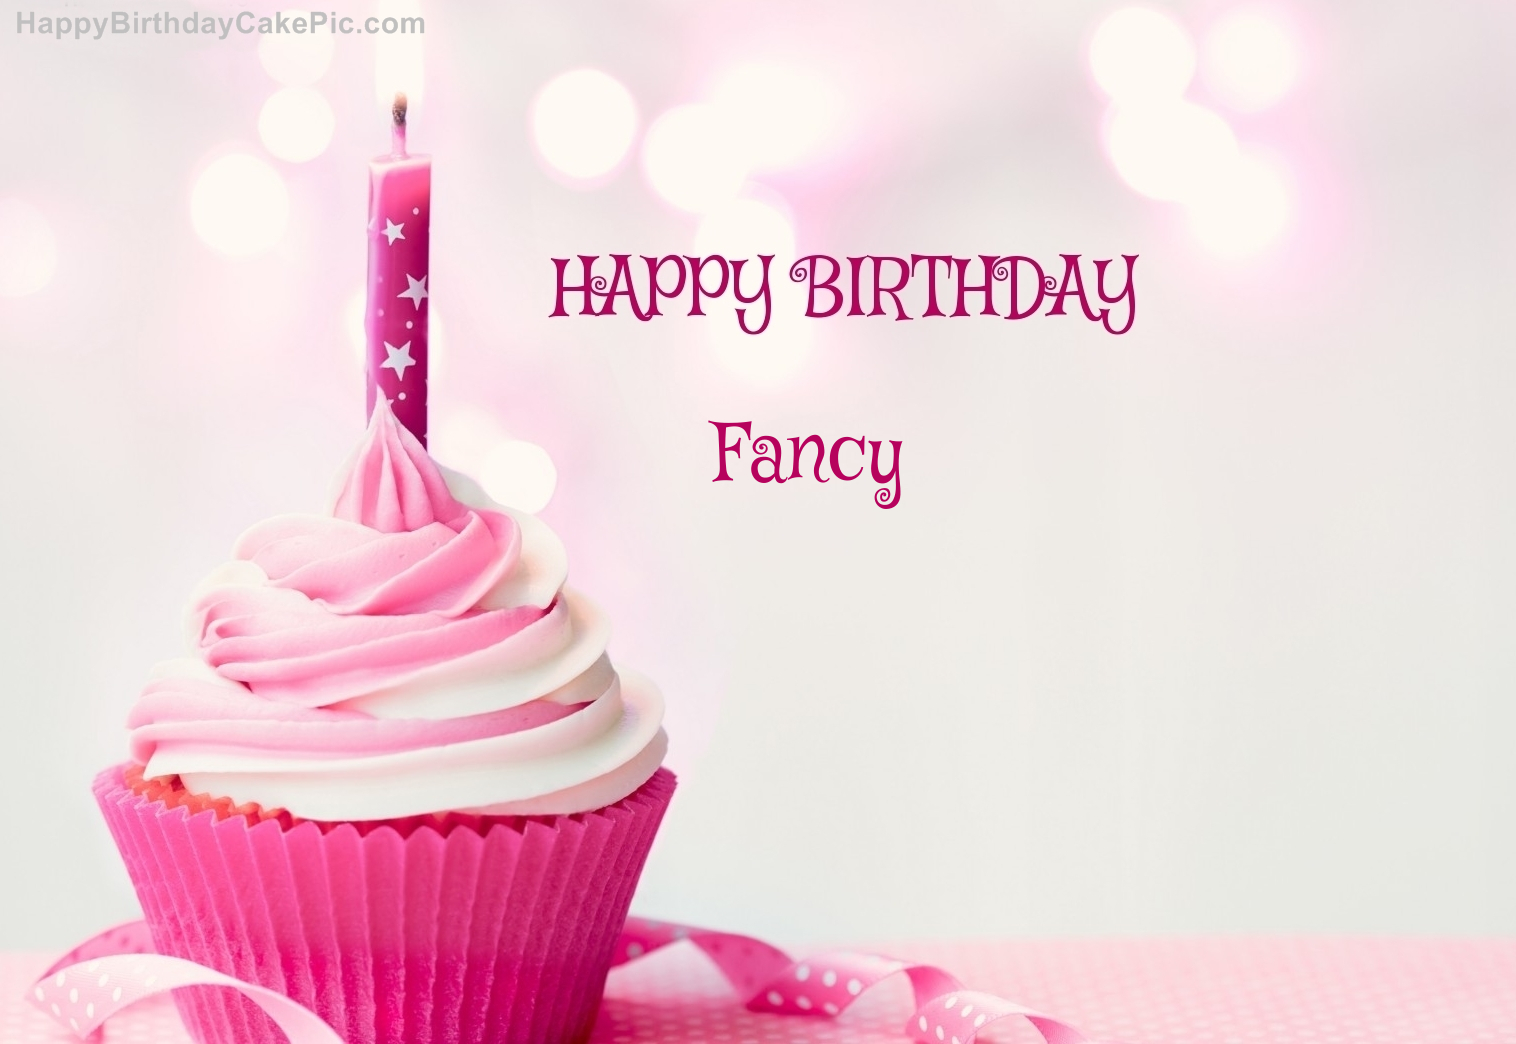 Happy Birthday Cupcake Candle Pink Cake For Fancy